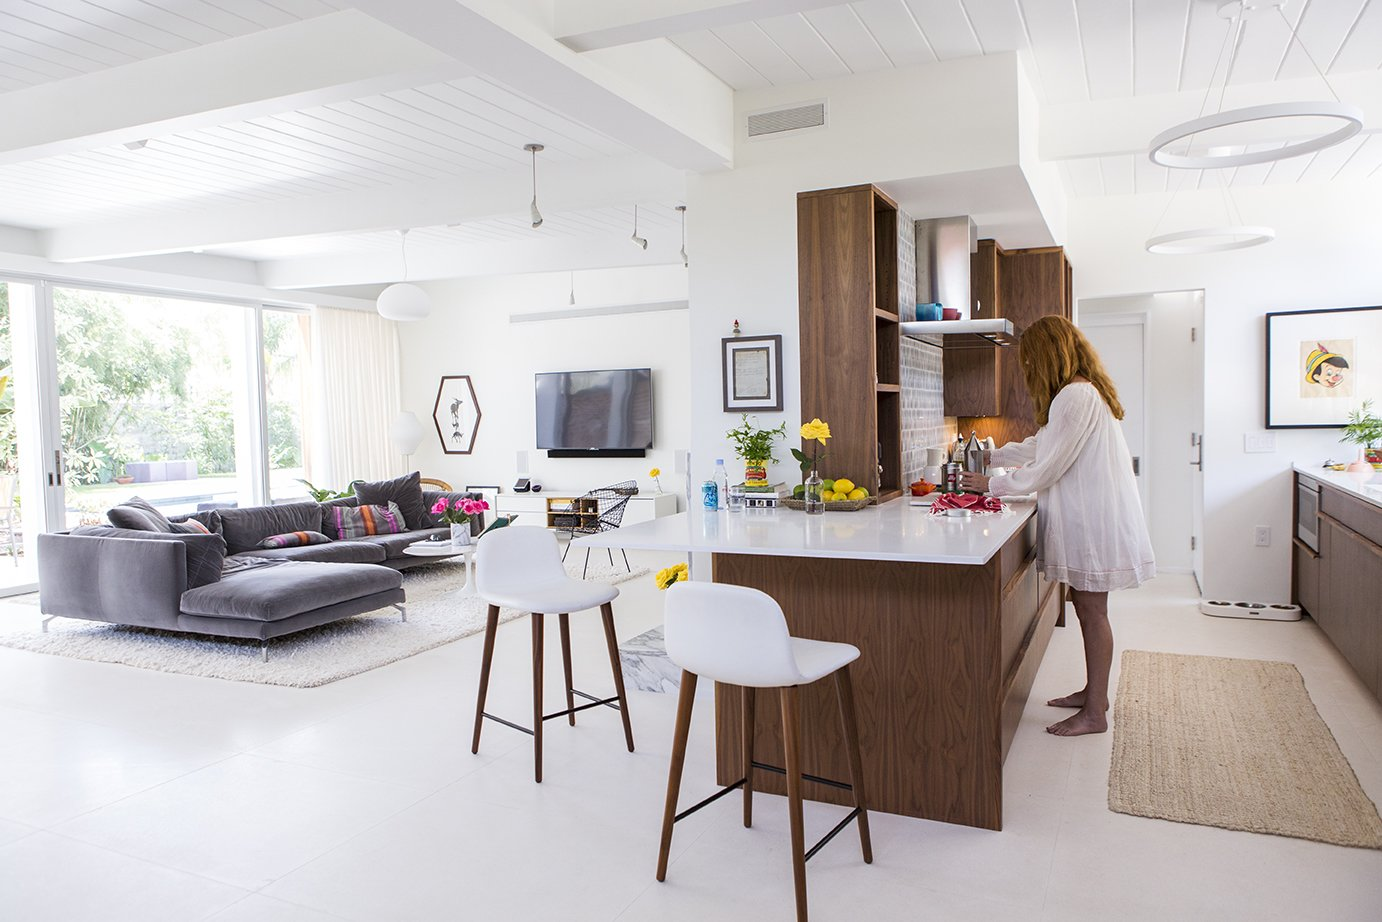 Kitchen, Engineered Quartz Counter, Wood Cabinet, Pendant Lighting, Ceiling Lighting, Accent Lighting, and Rug Floor A 1953 modern home by Curtis and Davis in New Orleans's Lakeshore neighborhood proved too tempting to pass up for veteran renovators Maury Strong, a film producer with an A-list client roster, and Ron Caron,  a public school teacher. But the couple soon discovered that the flood-damaged structure with multiple sloppy renovations was  a bigger challenge than they had imagined. With the help of a team led by Wayne Troyer and Natan Diacon-Furtado of studioWTA and the original architectural plans, they created a modern oasis to last a lifetime.  Photo 1 of 13 in Back to the Garden